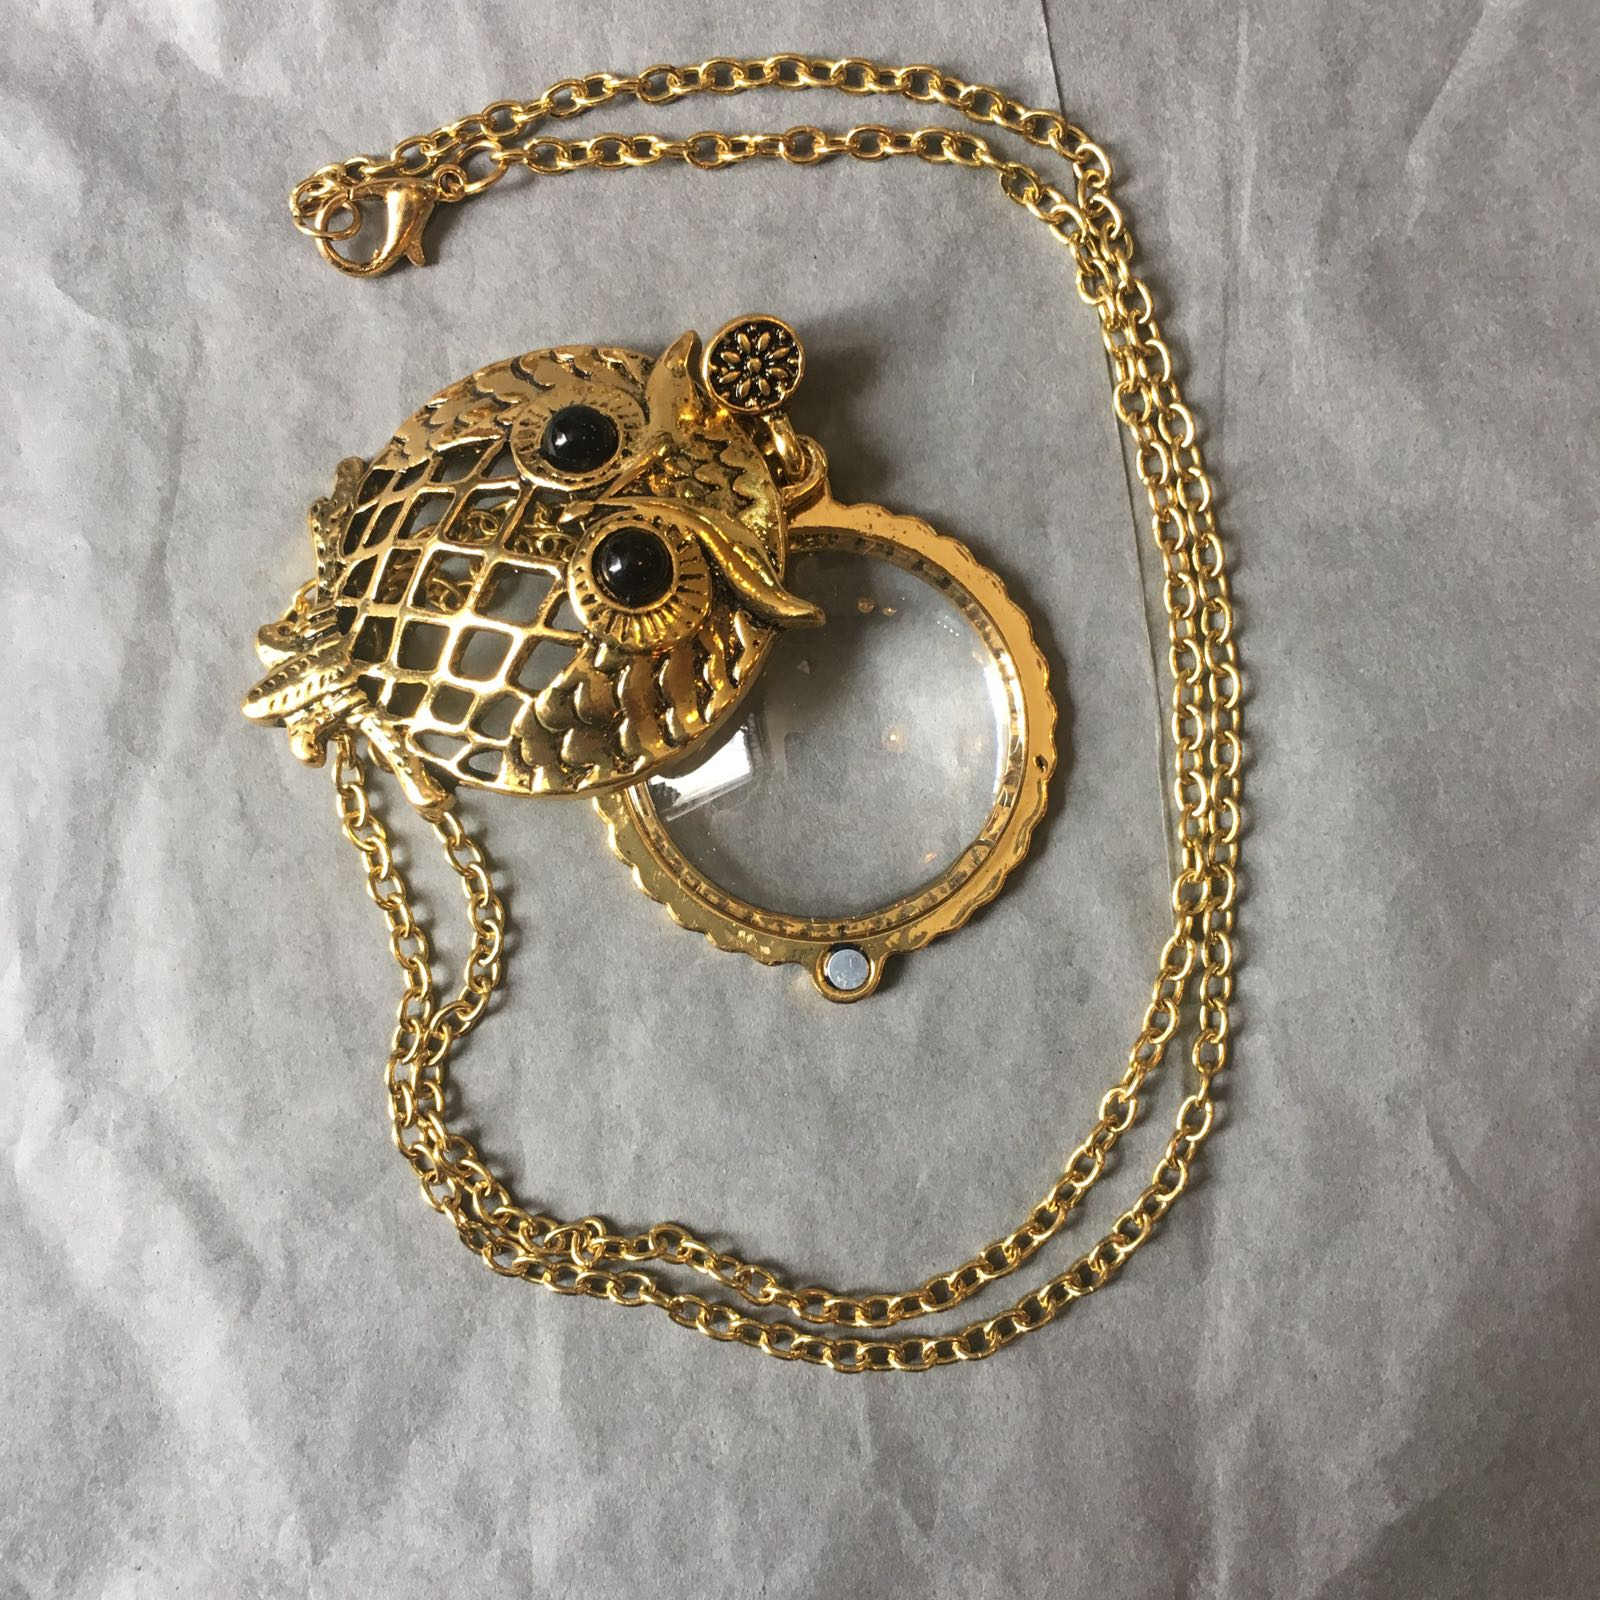 Magnifier With Cover in Gold Tone Metal on Chain.